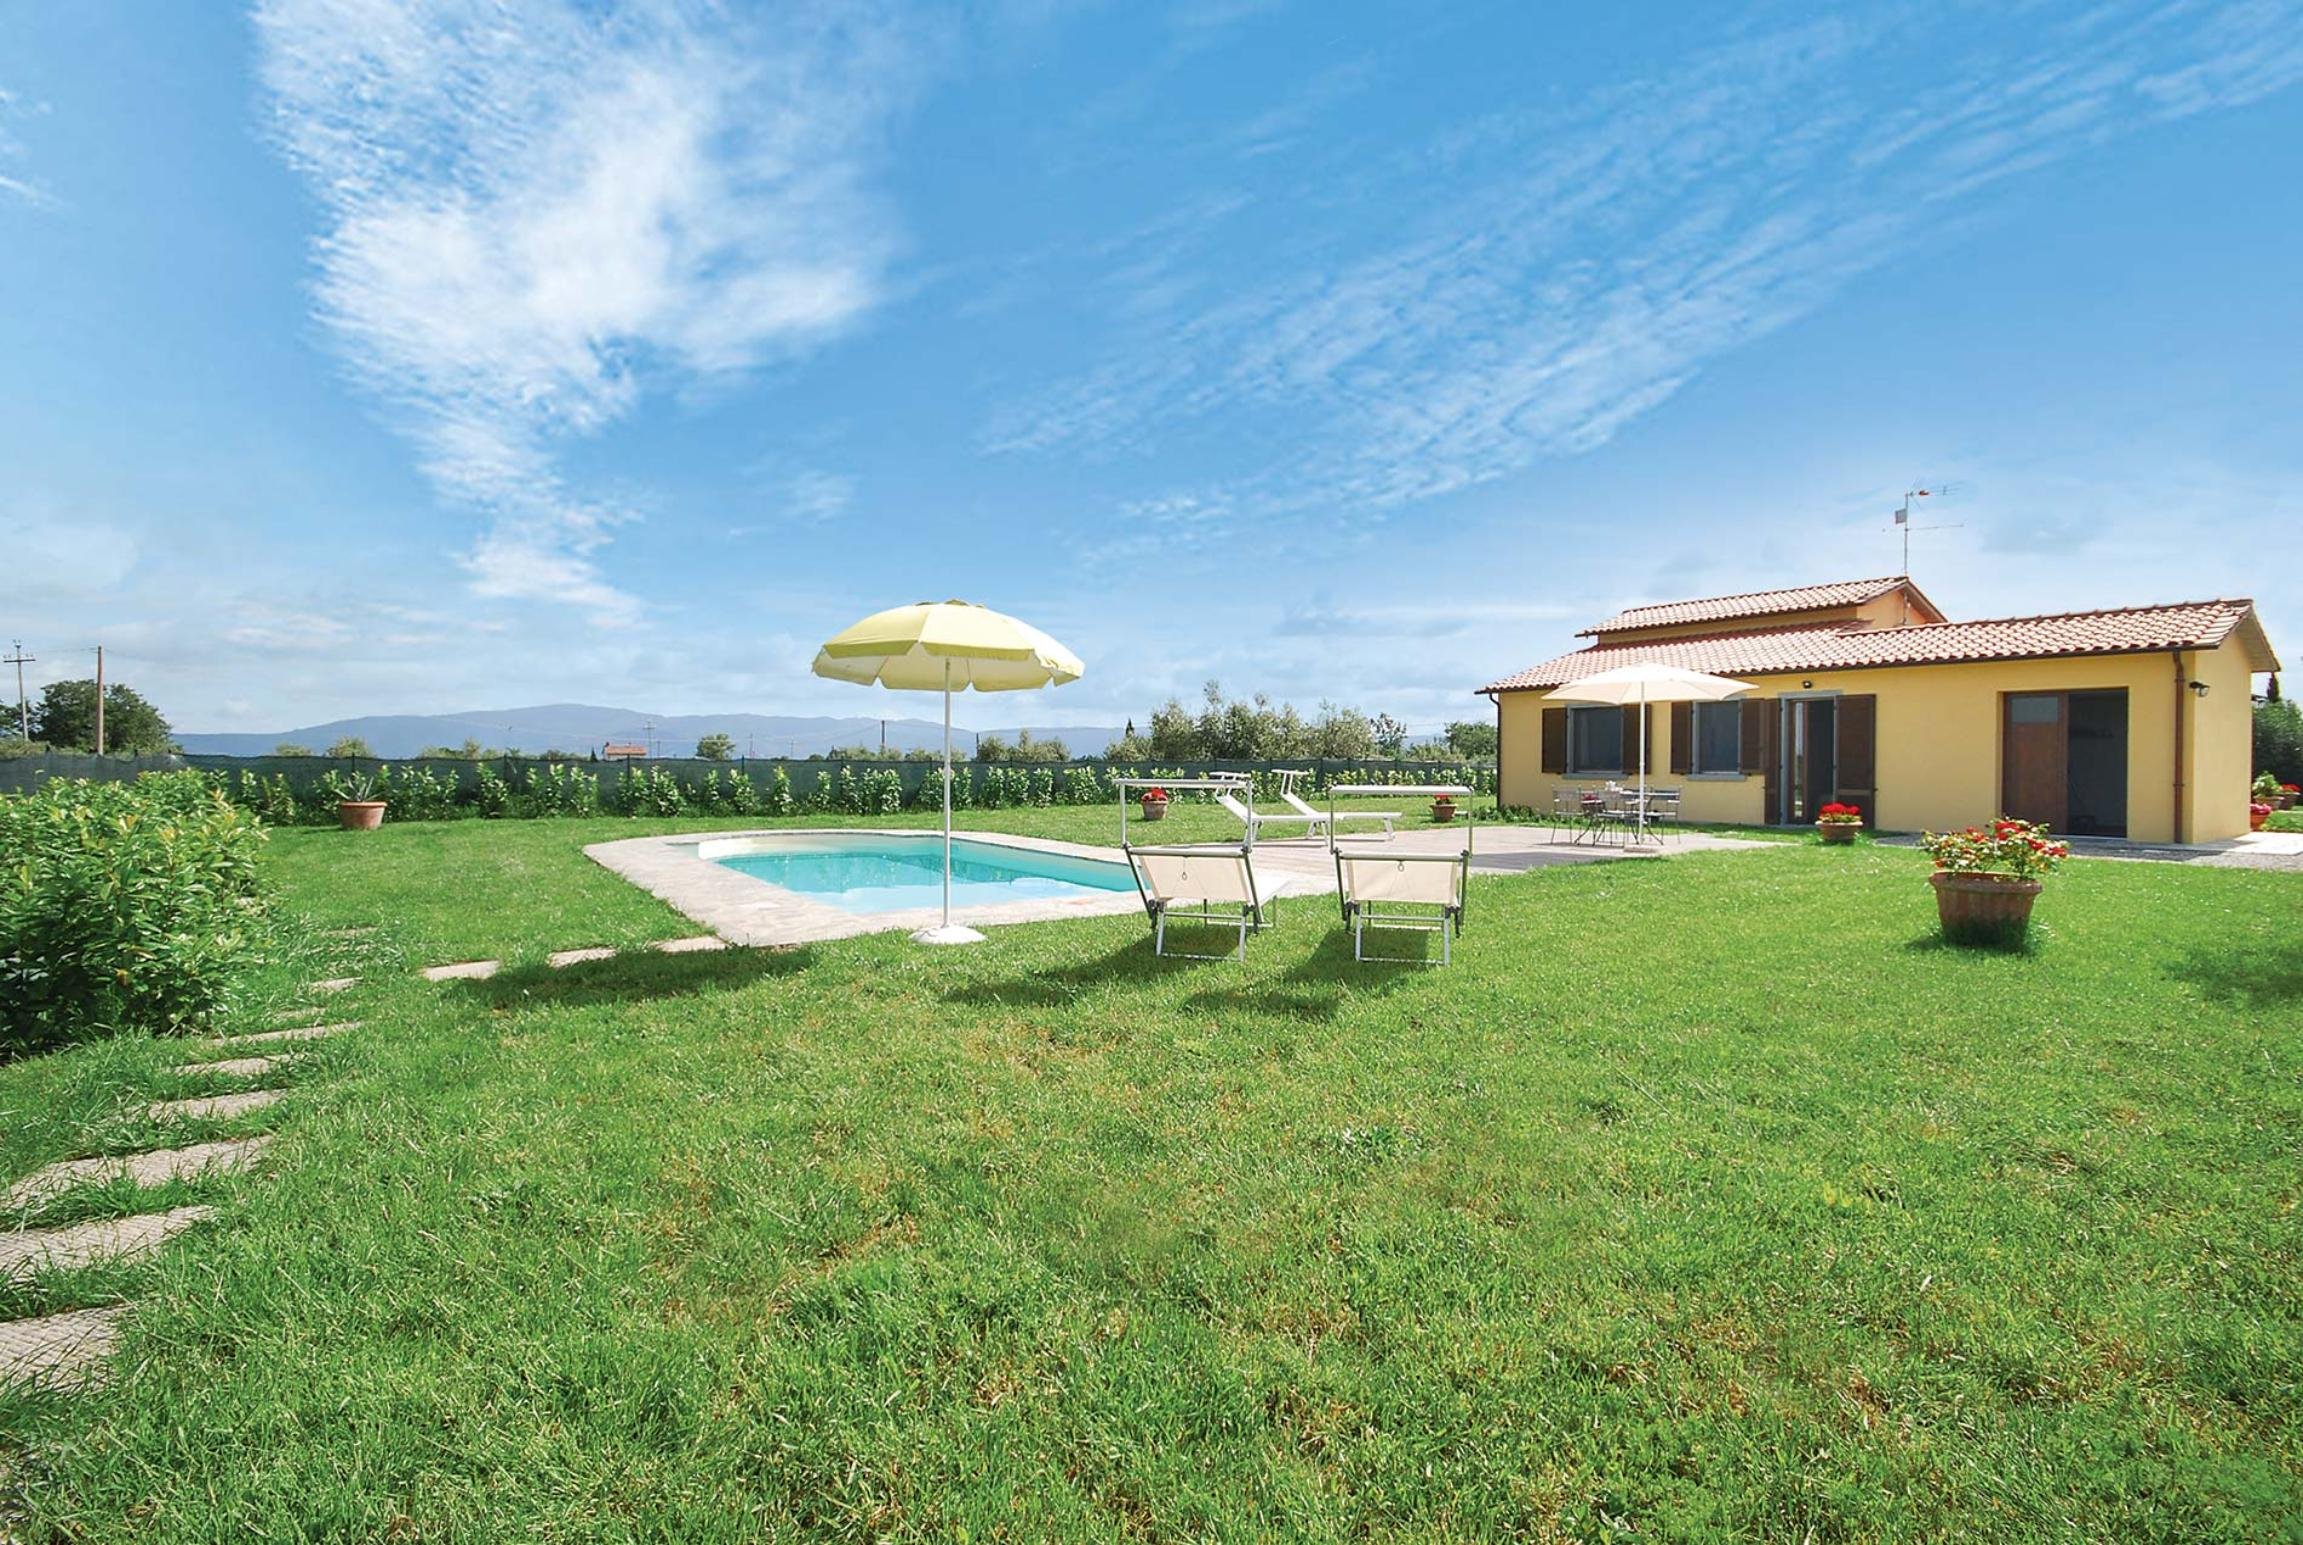 Read more about Mirabella villa